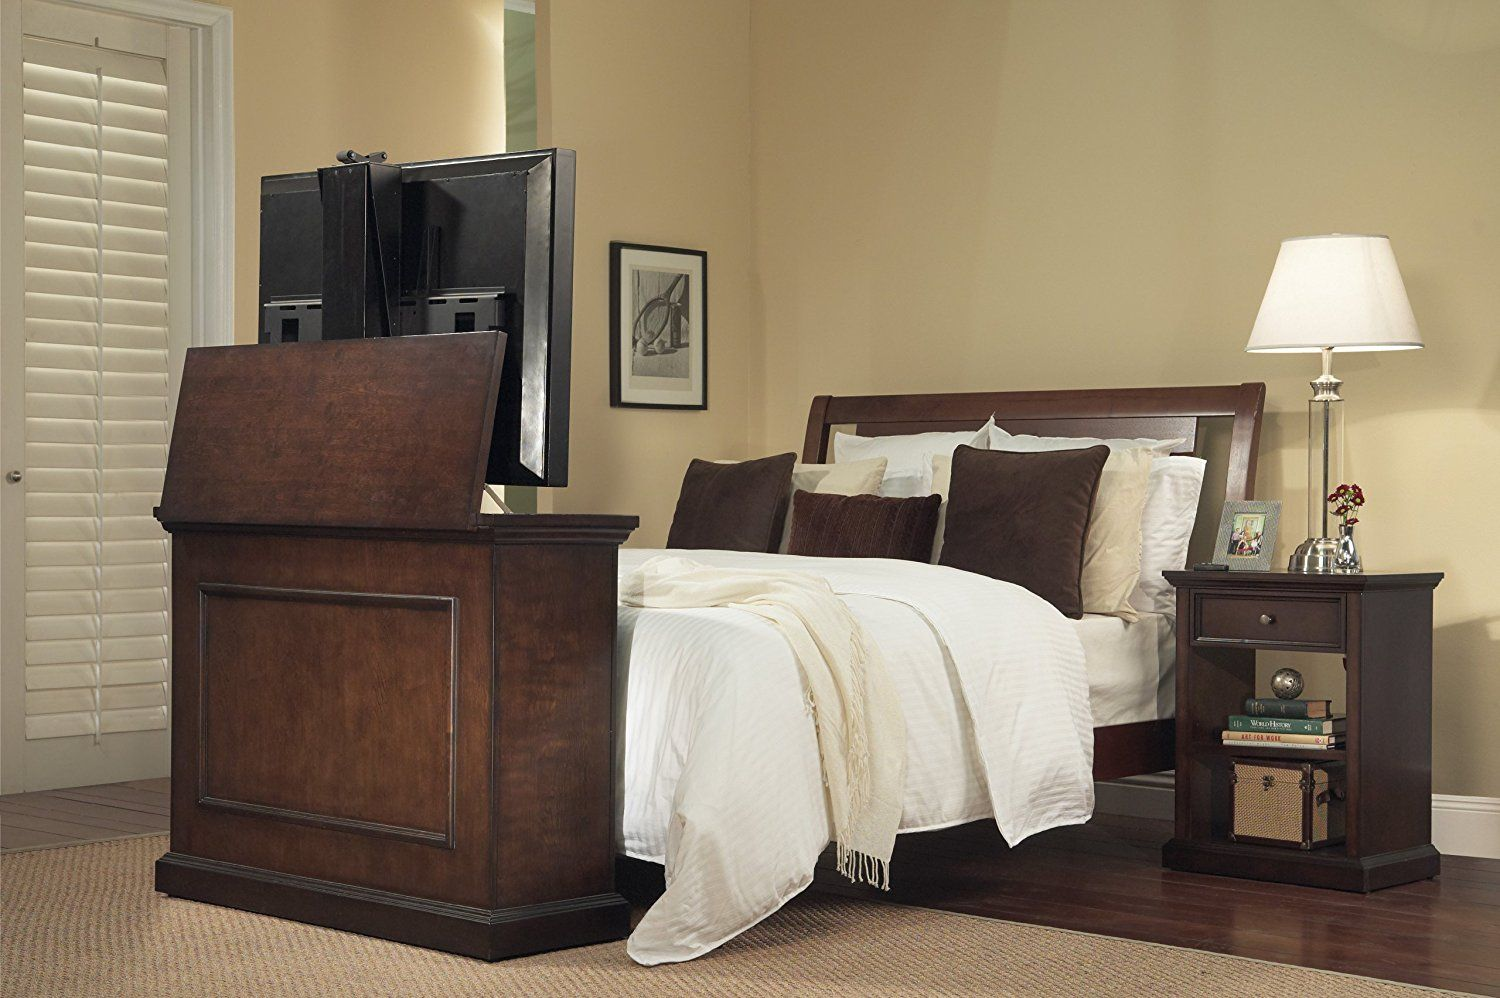 Bedroom Touchstone Elevate Tv Lift Cabinet Wid On Tv Lift Cabinets